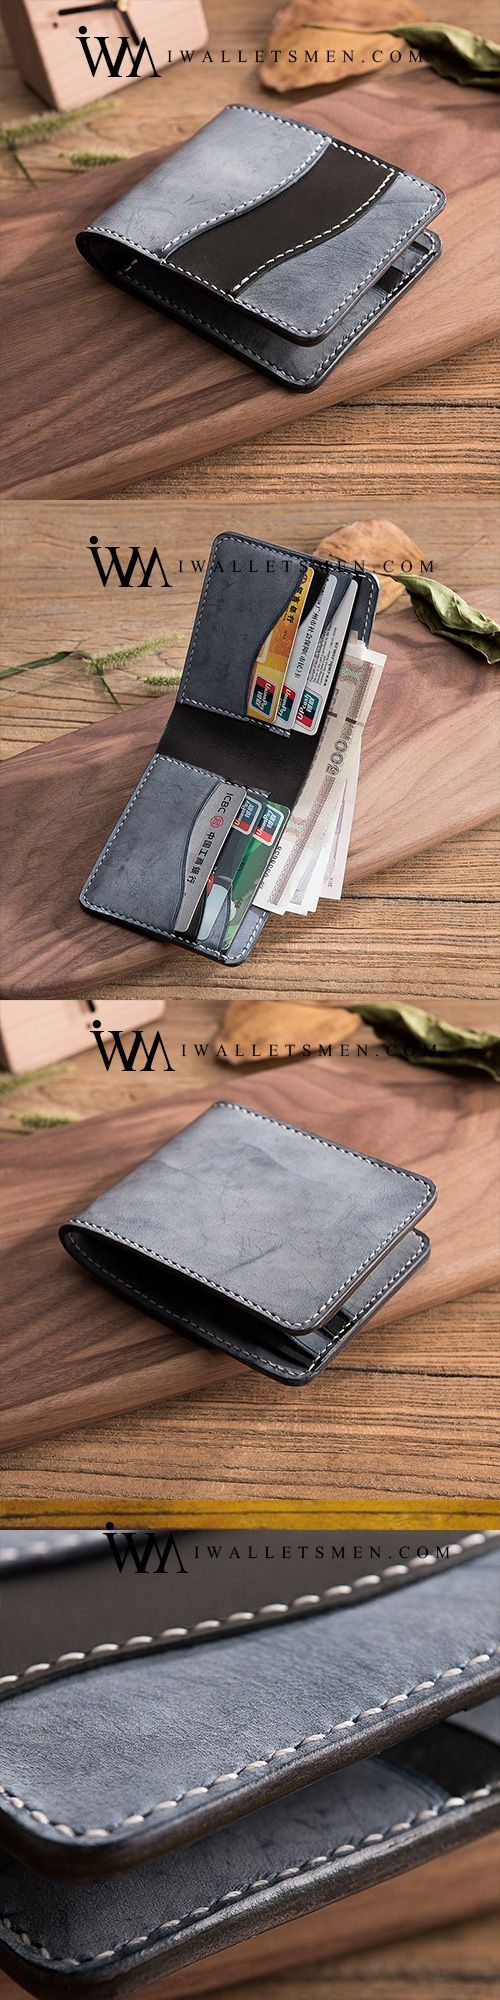 Handmade Leather Mens Cool Slim Leather Wallet Men Small Wallets Bifold for Men #leatherwallets